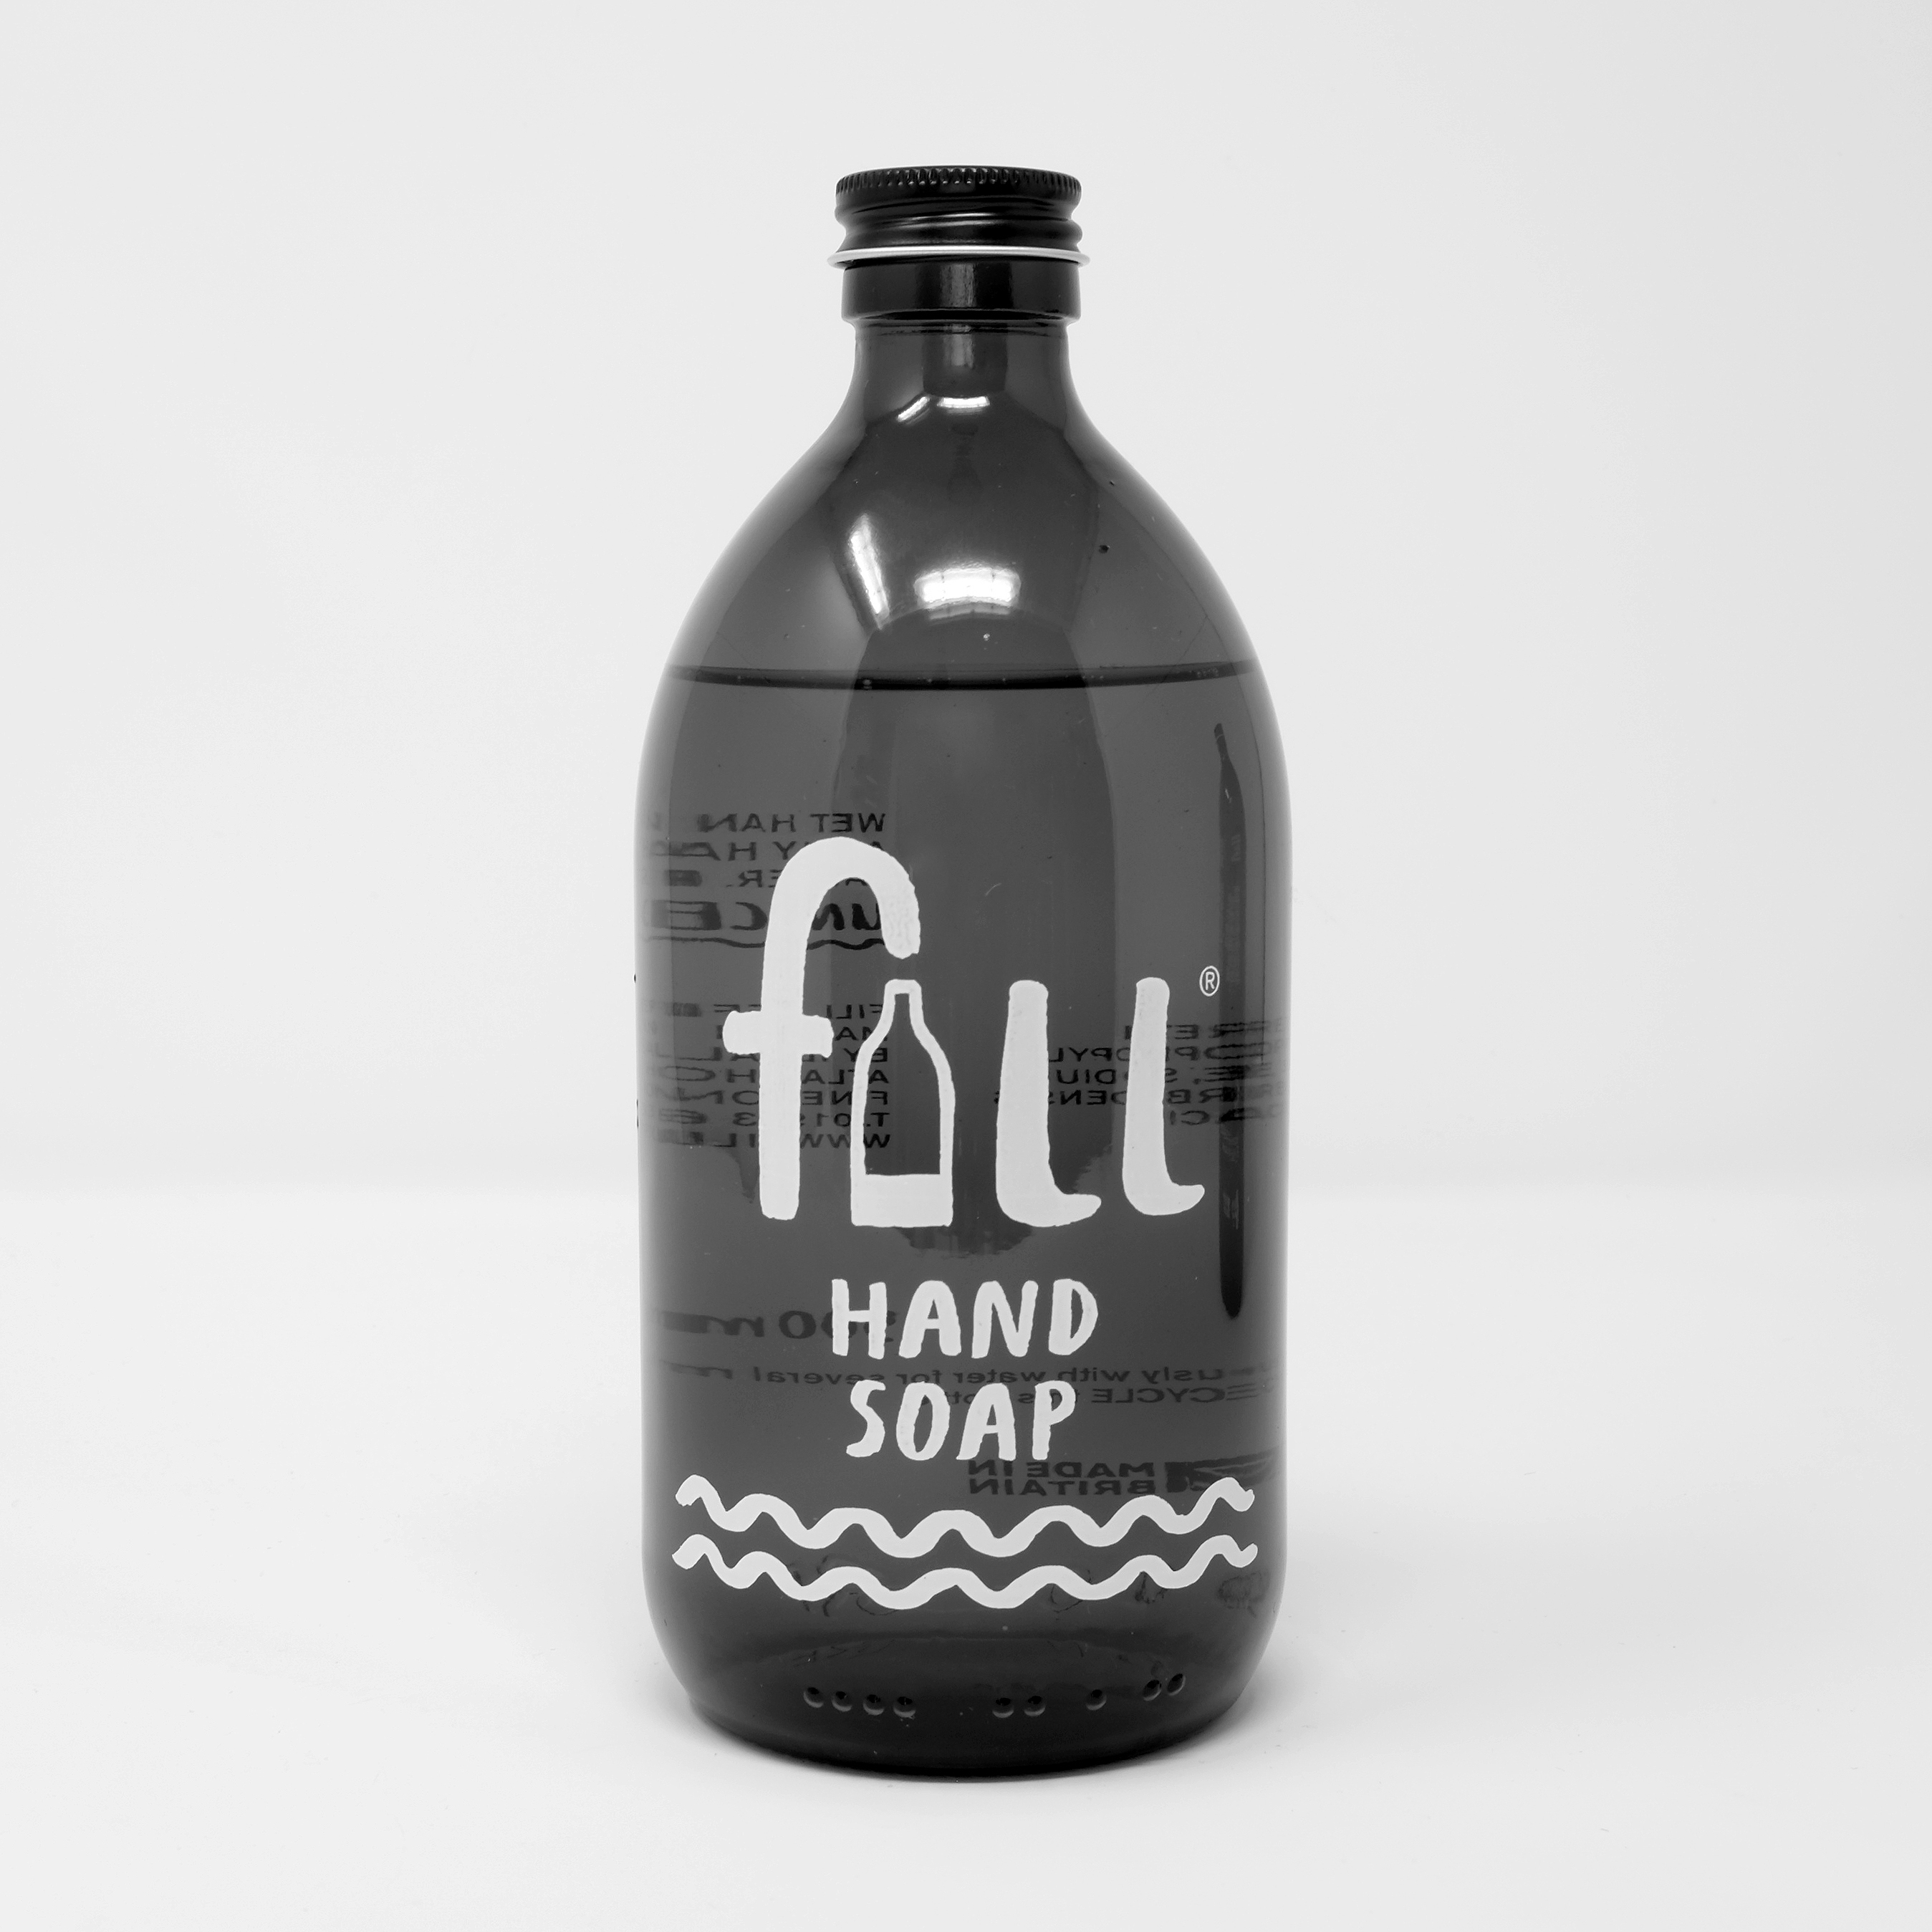 Hand Soap - Fig Leaf (500ml, with bottle) by Fill